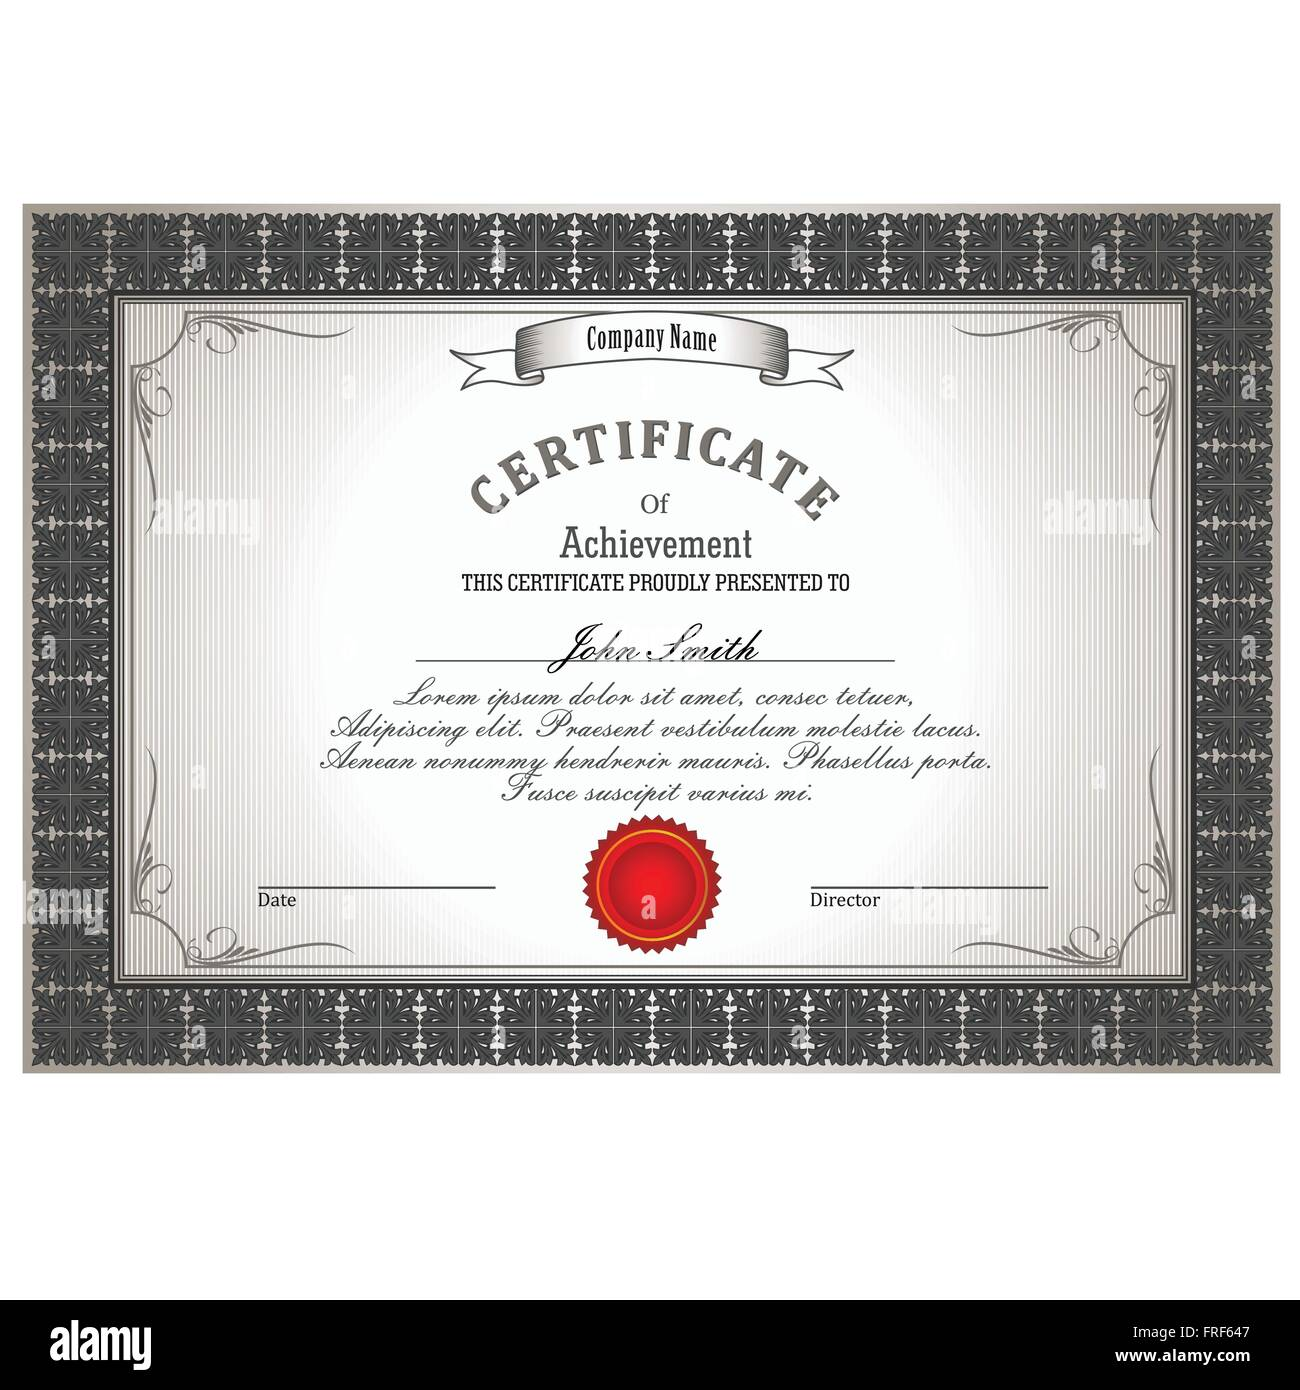 Antique Stock Certificate Stockfotos & Antique Stock Certificate ...